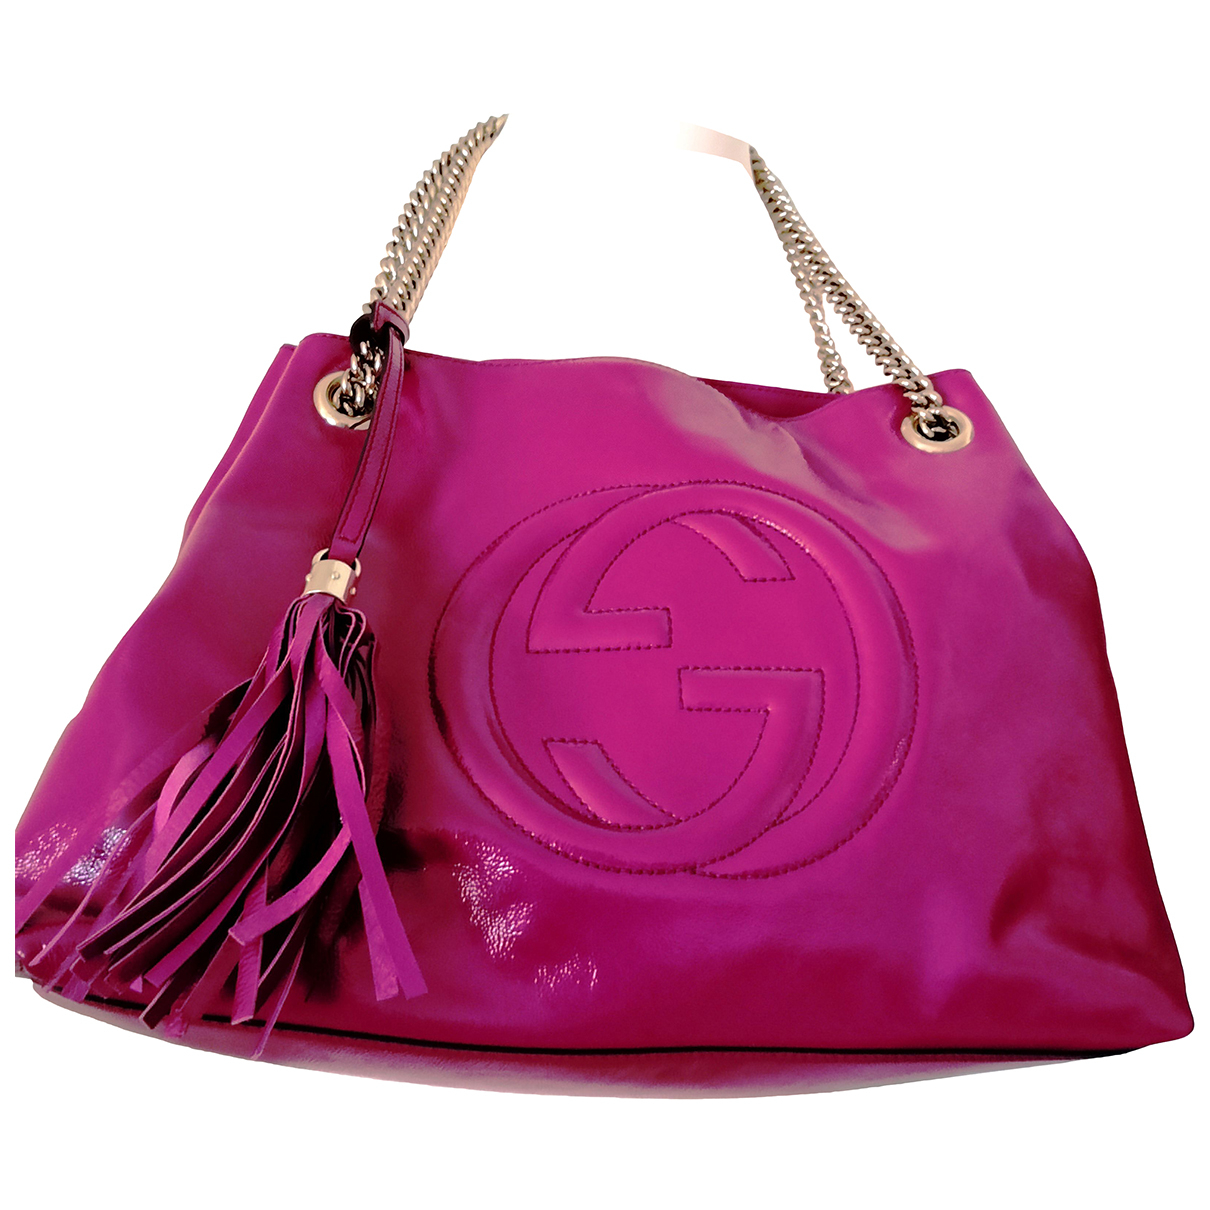 Gucci Soho Pink Patent leather handbag for Women N